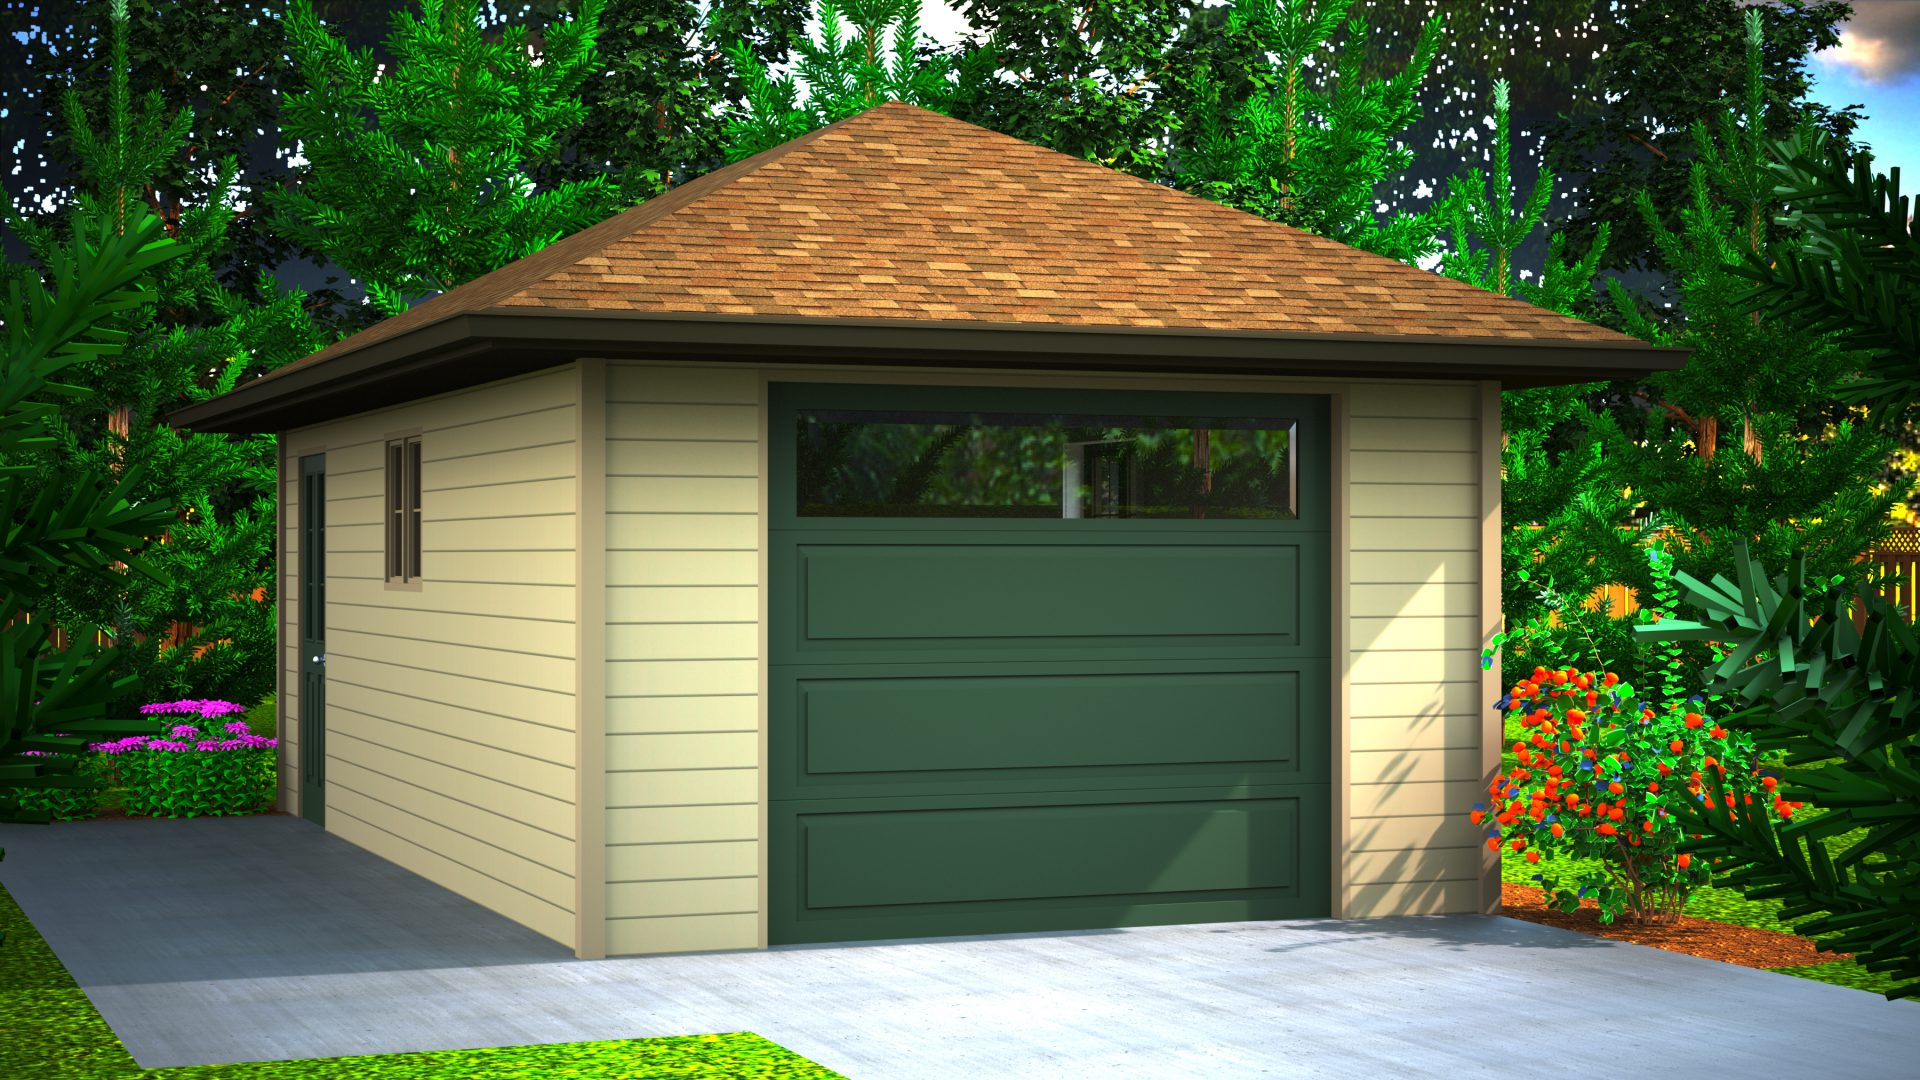 282 sq.ft. timber mart garage exterior render